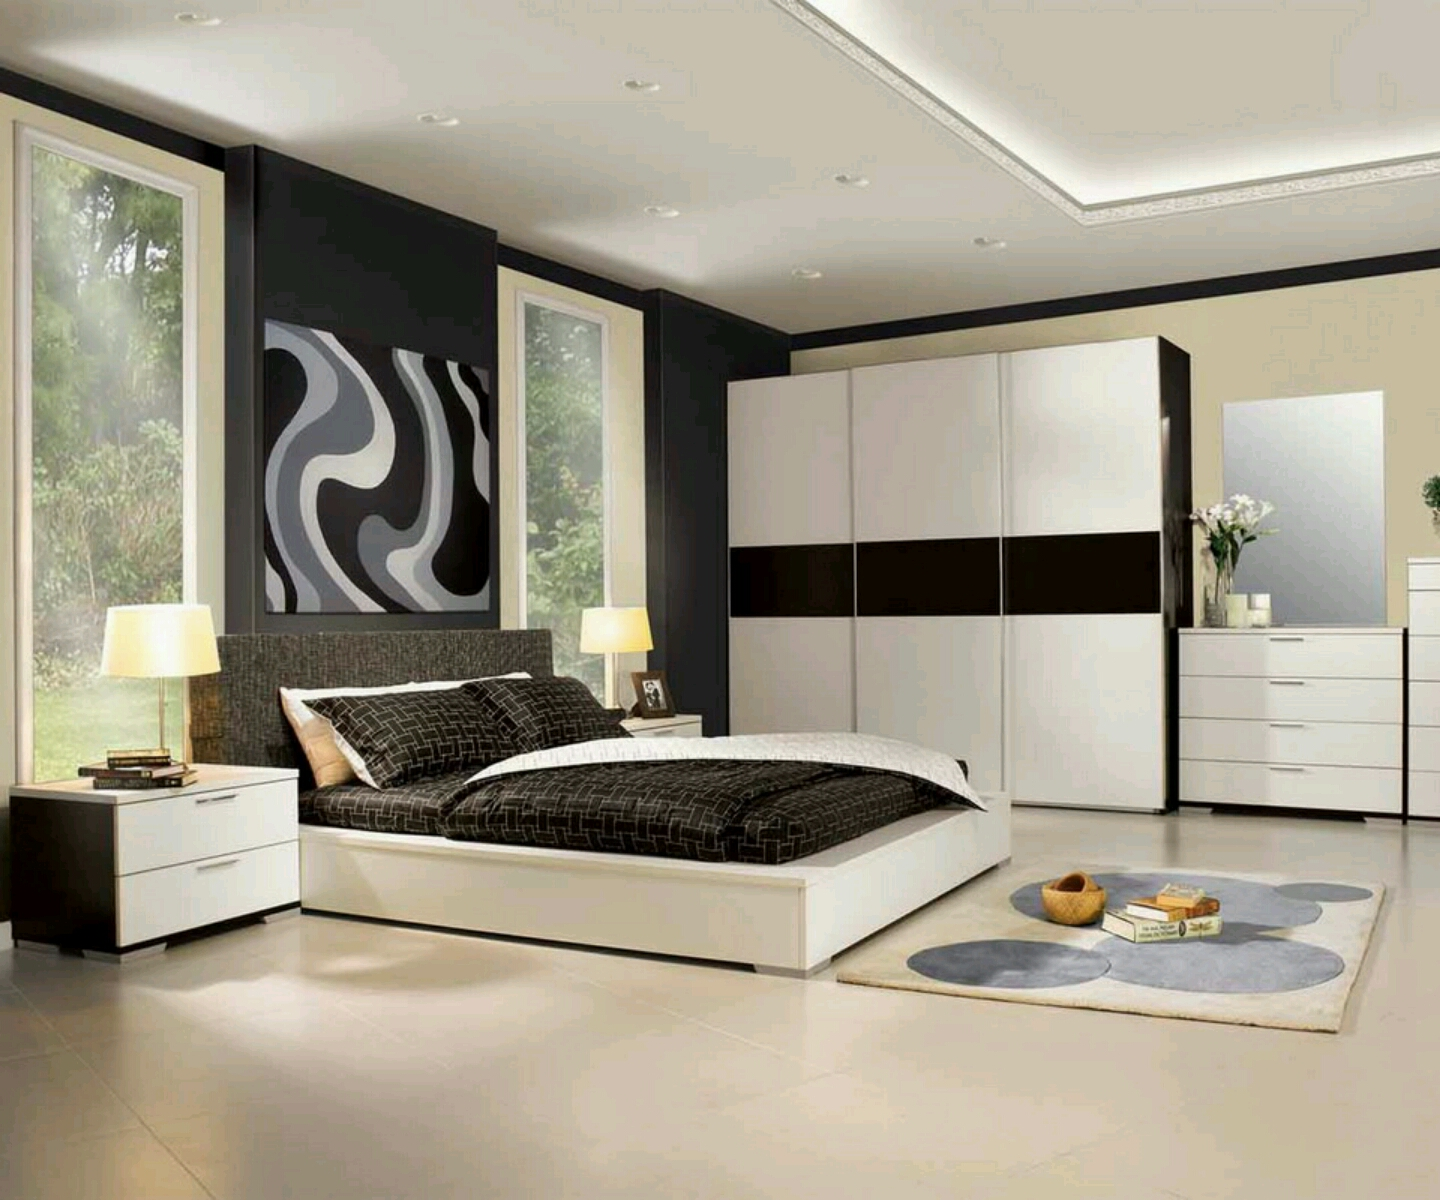 Best design home december 2012 for Bedroom modern design